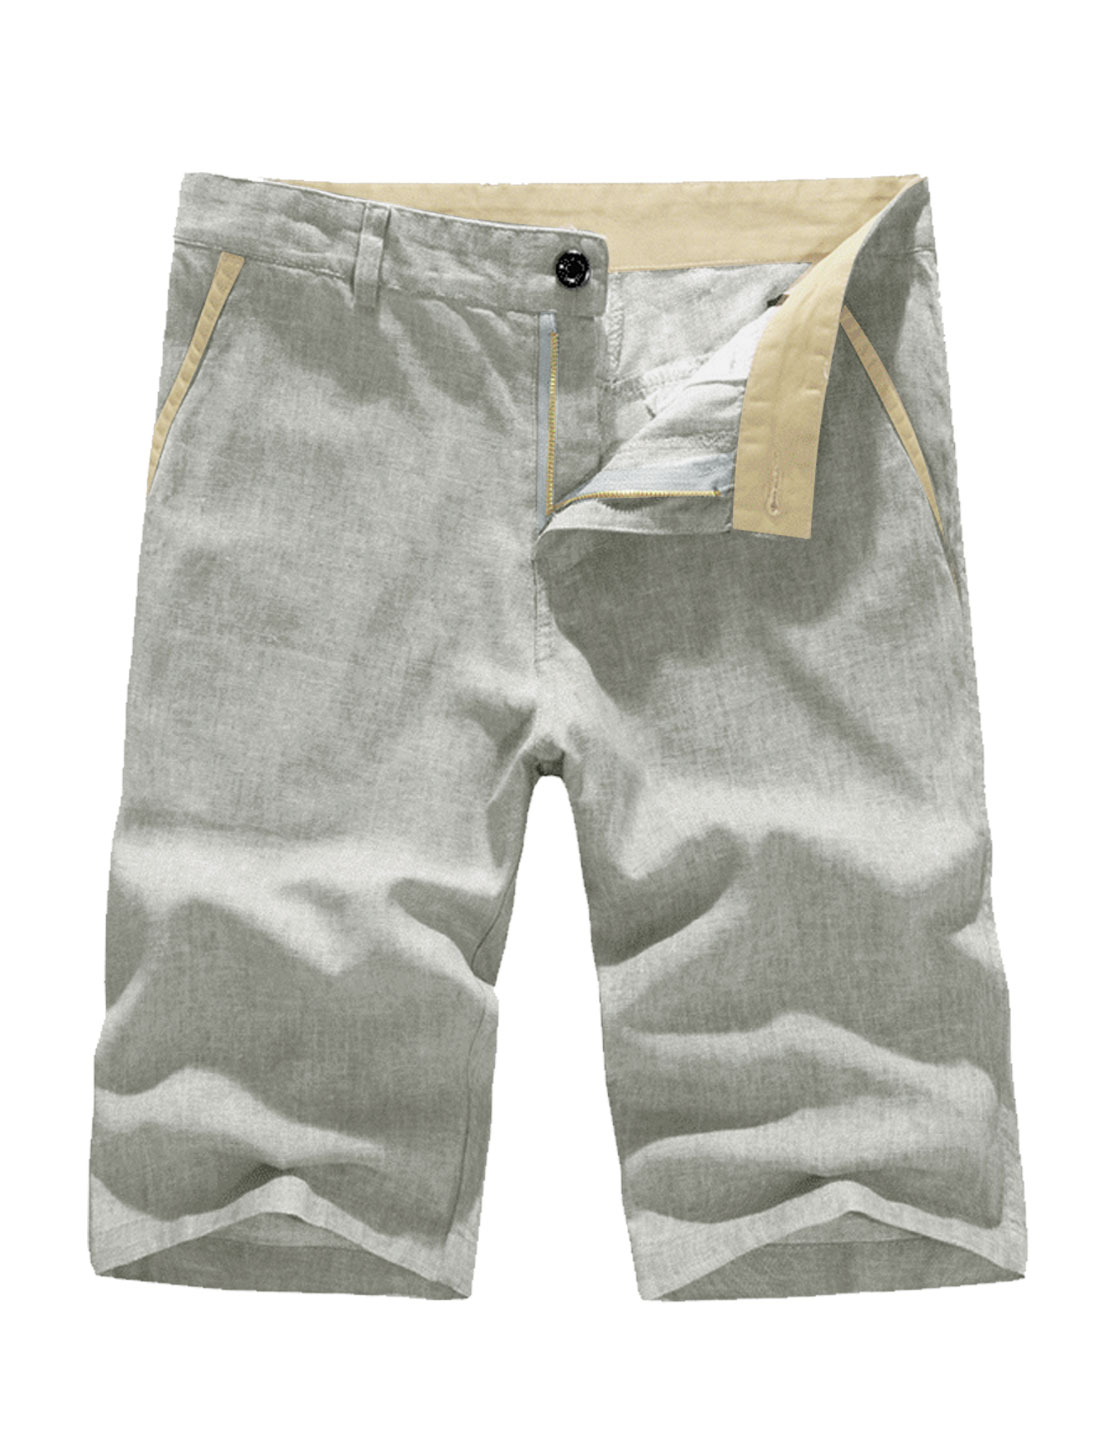 Men Loose Fit Zip Fly Buttons Detail Shorts Light Gray W32